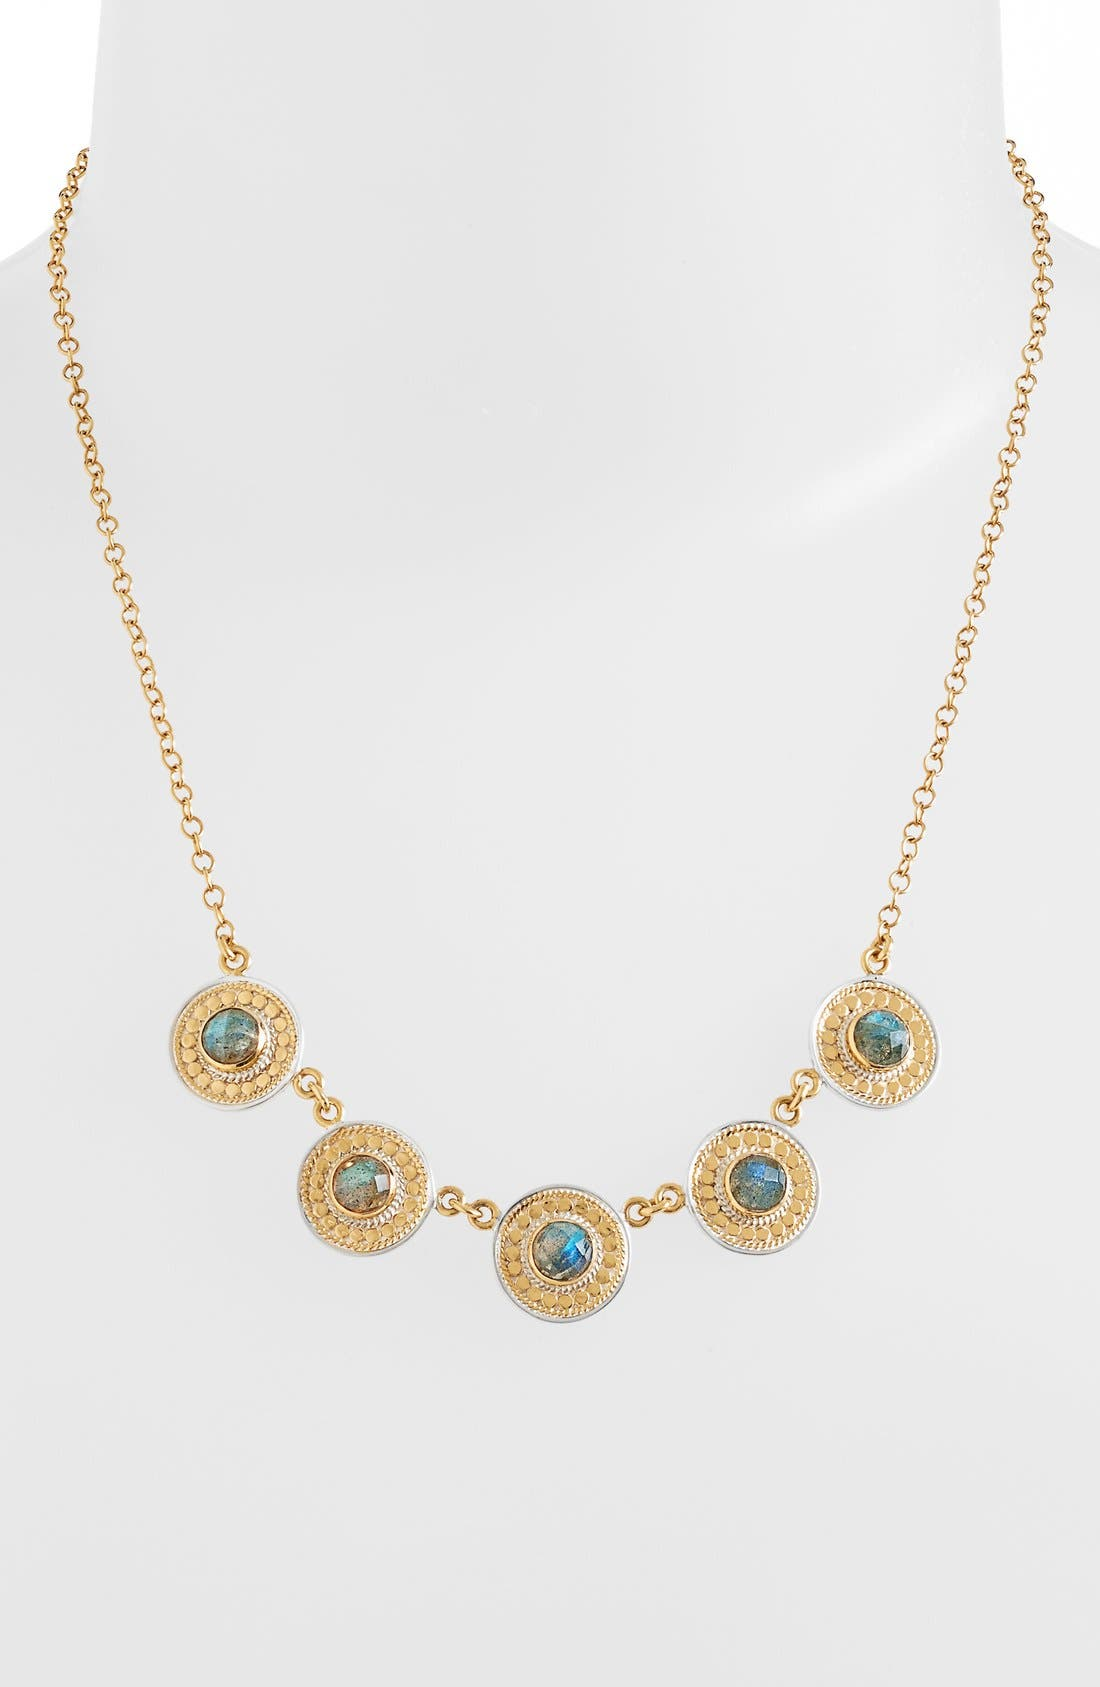 Main Image - Anna Beck 'Gili' Frontal Necklace (Online Only)